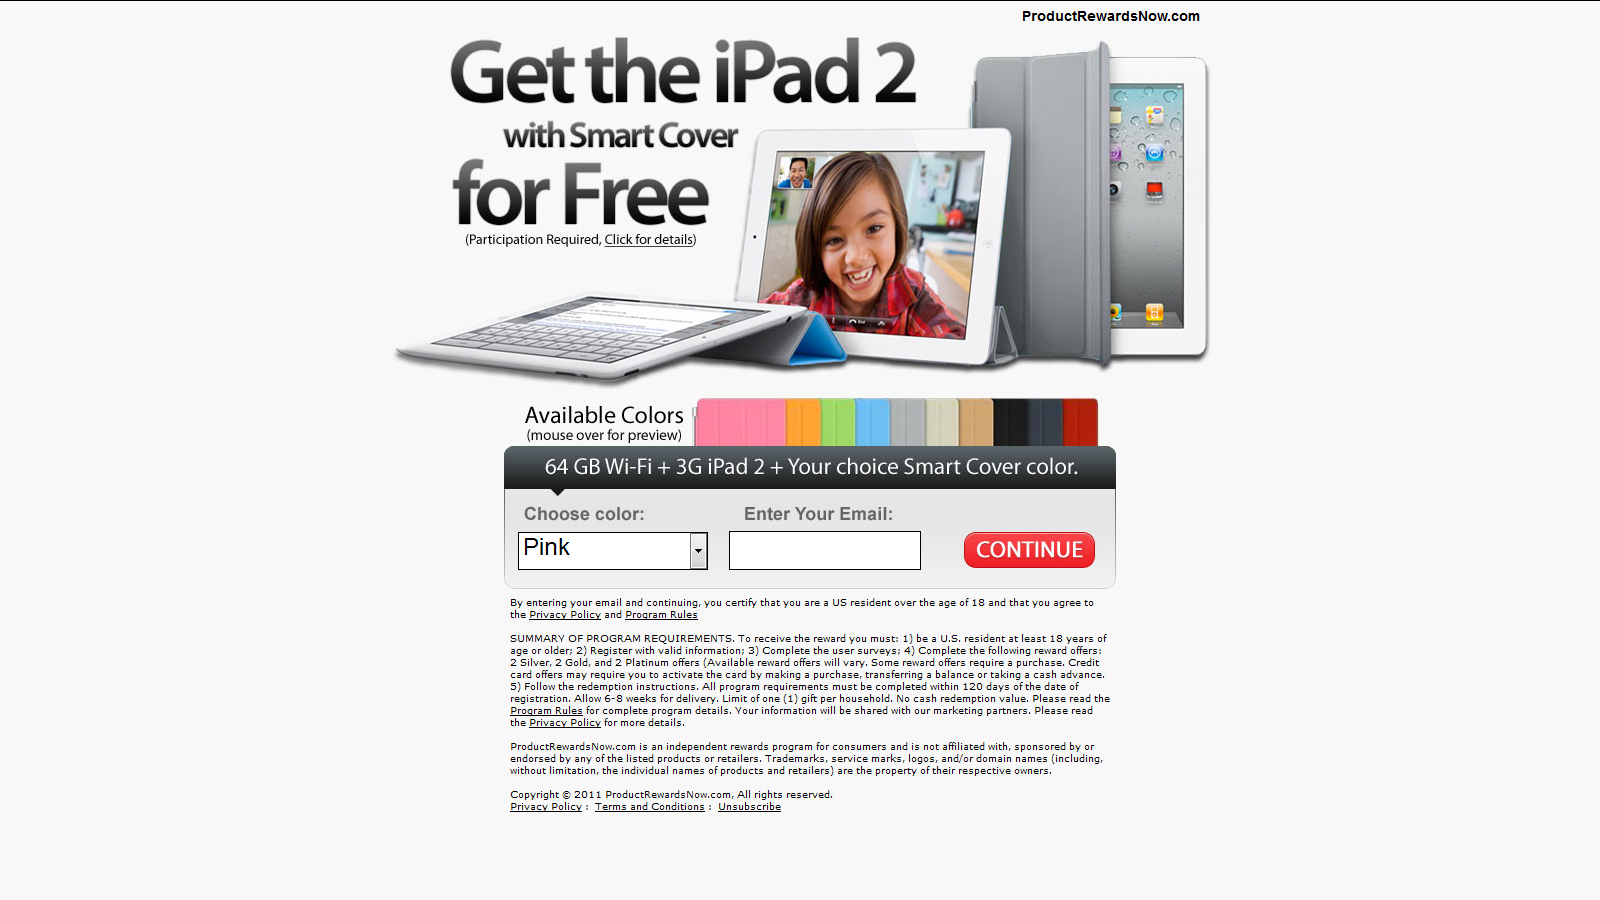 Test and Keep an iPad 2 For Free